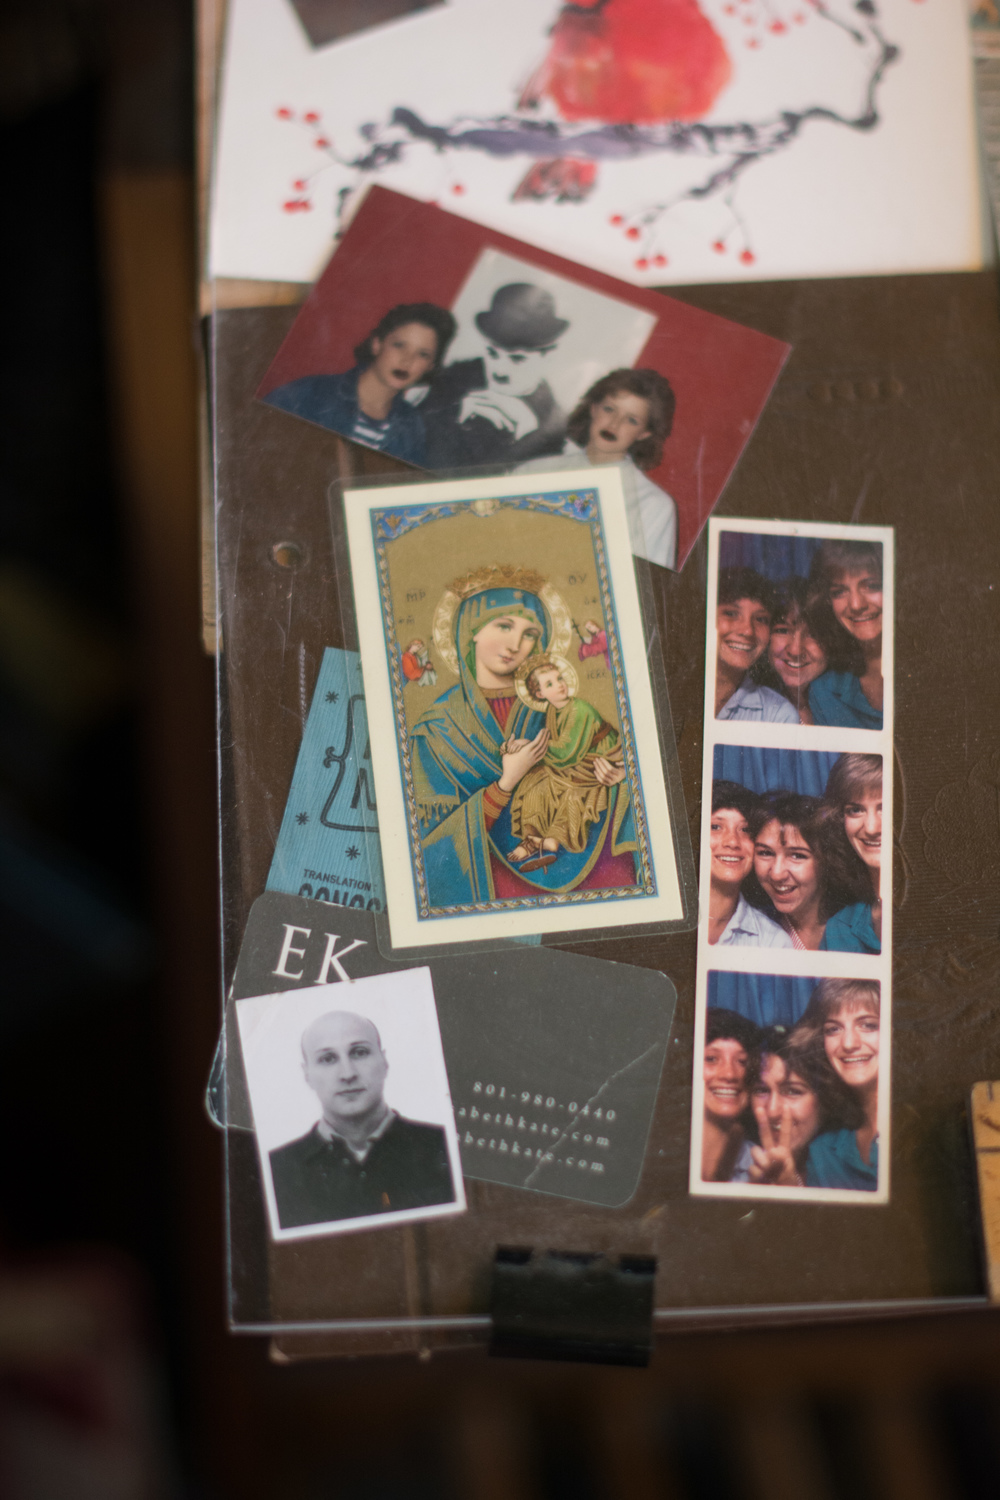 Photo booths are loved unconditionally in their home- I often found little pictures of Mary, Daryl- her husband, and the kids when they were young.